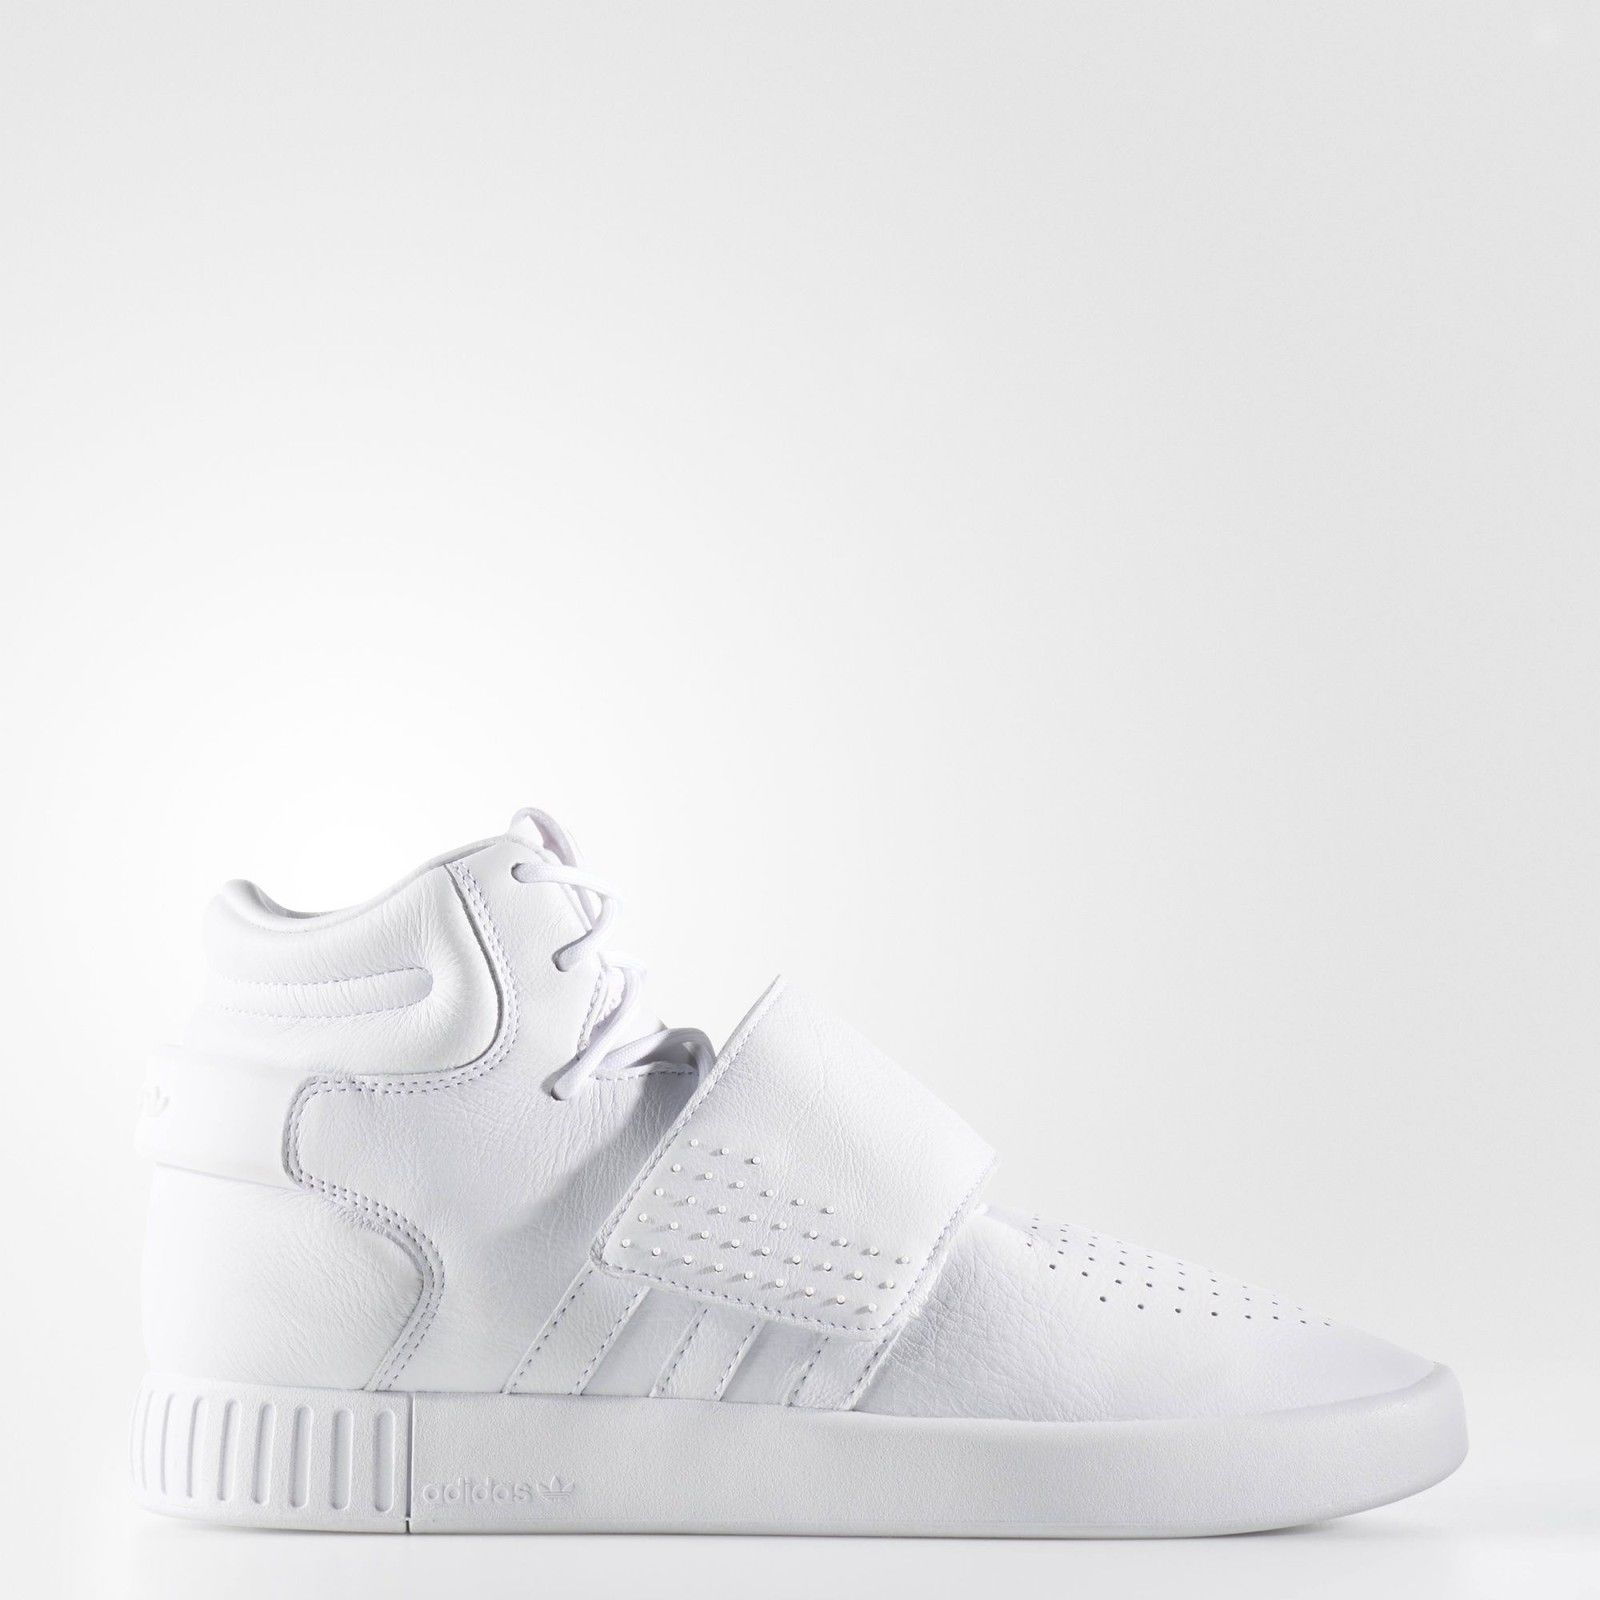 b02d05b400e8 Details about ✅ 24Hr DELIVERY✅ ADIDAS Originals Tubular Invader ...